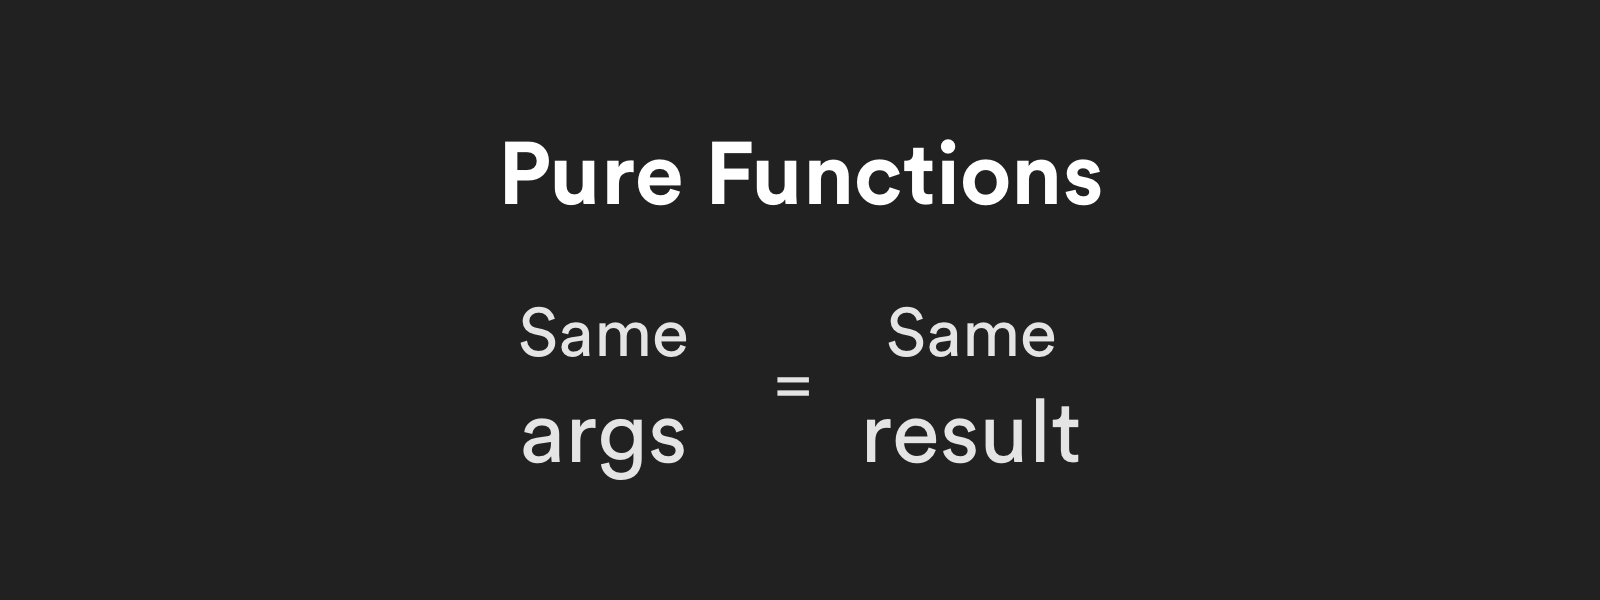 pure-functions